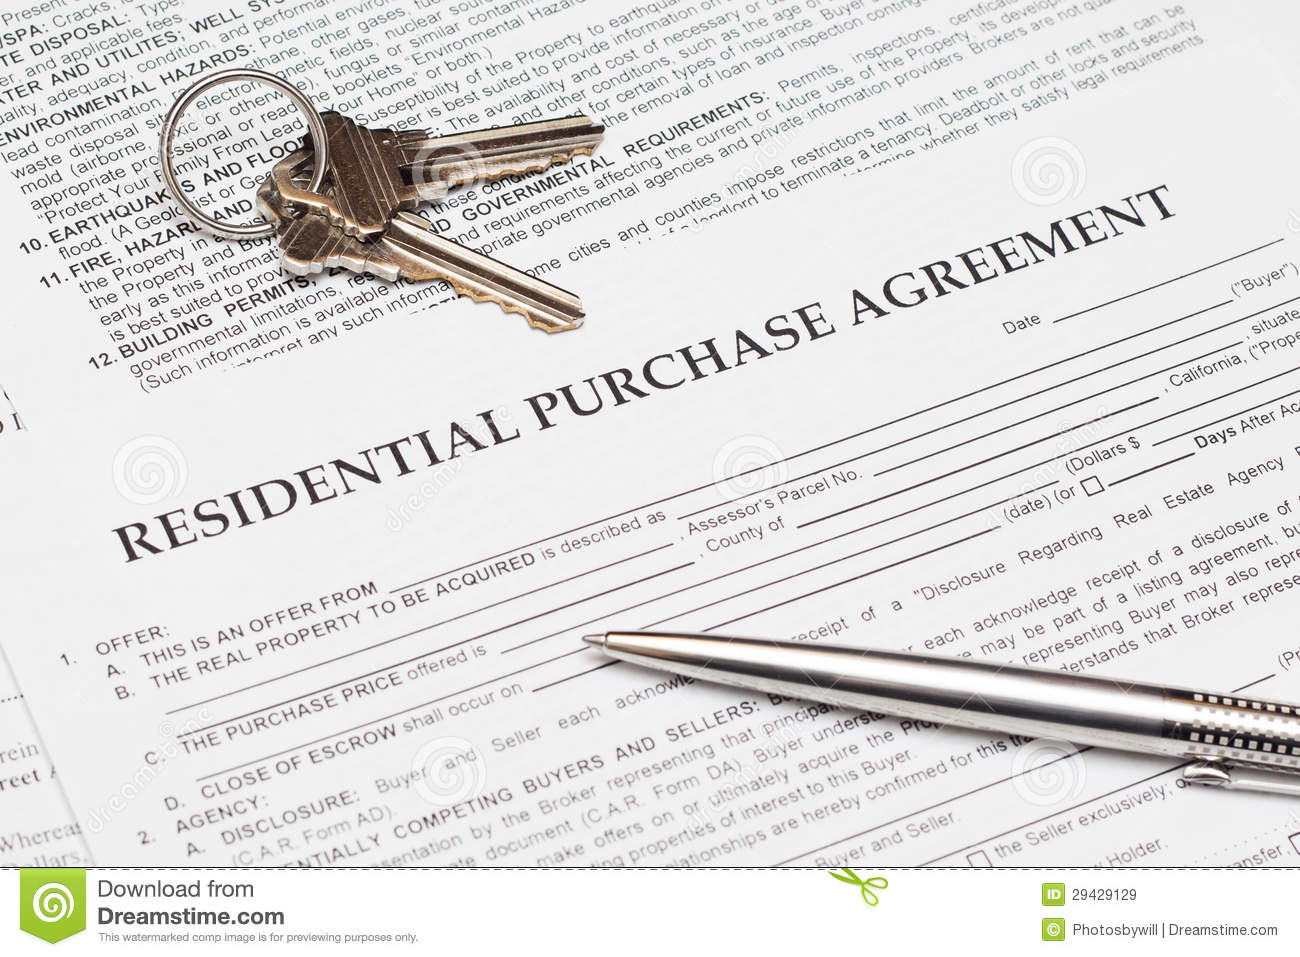 Residential Purchase Agreement Stock Image Image Of Finances Real